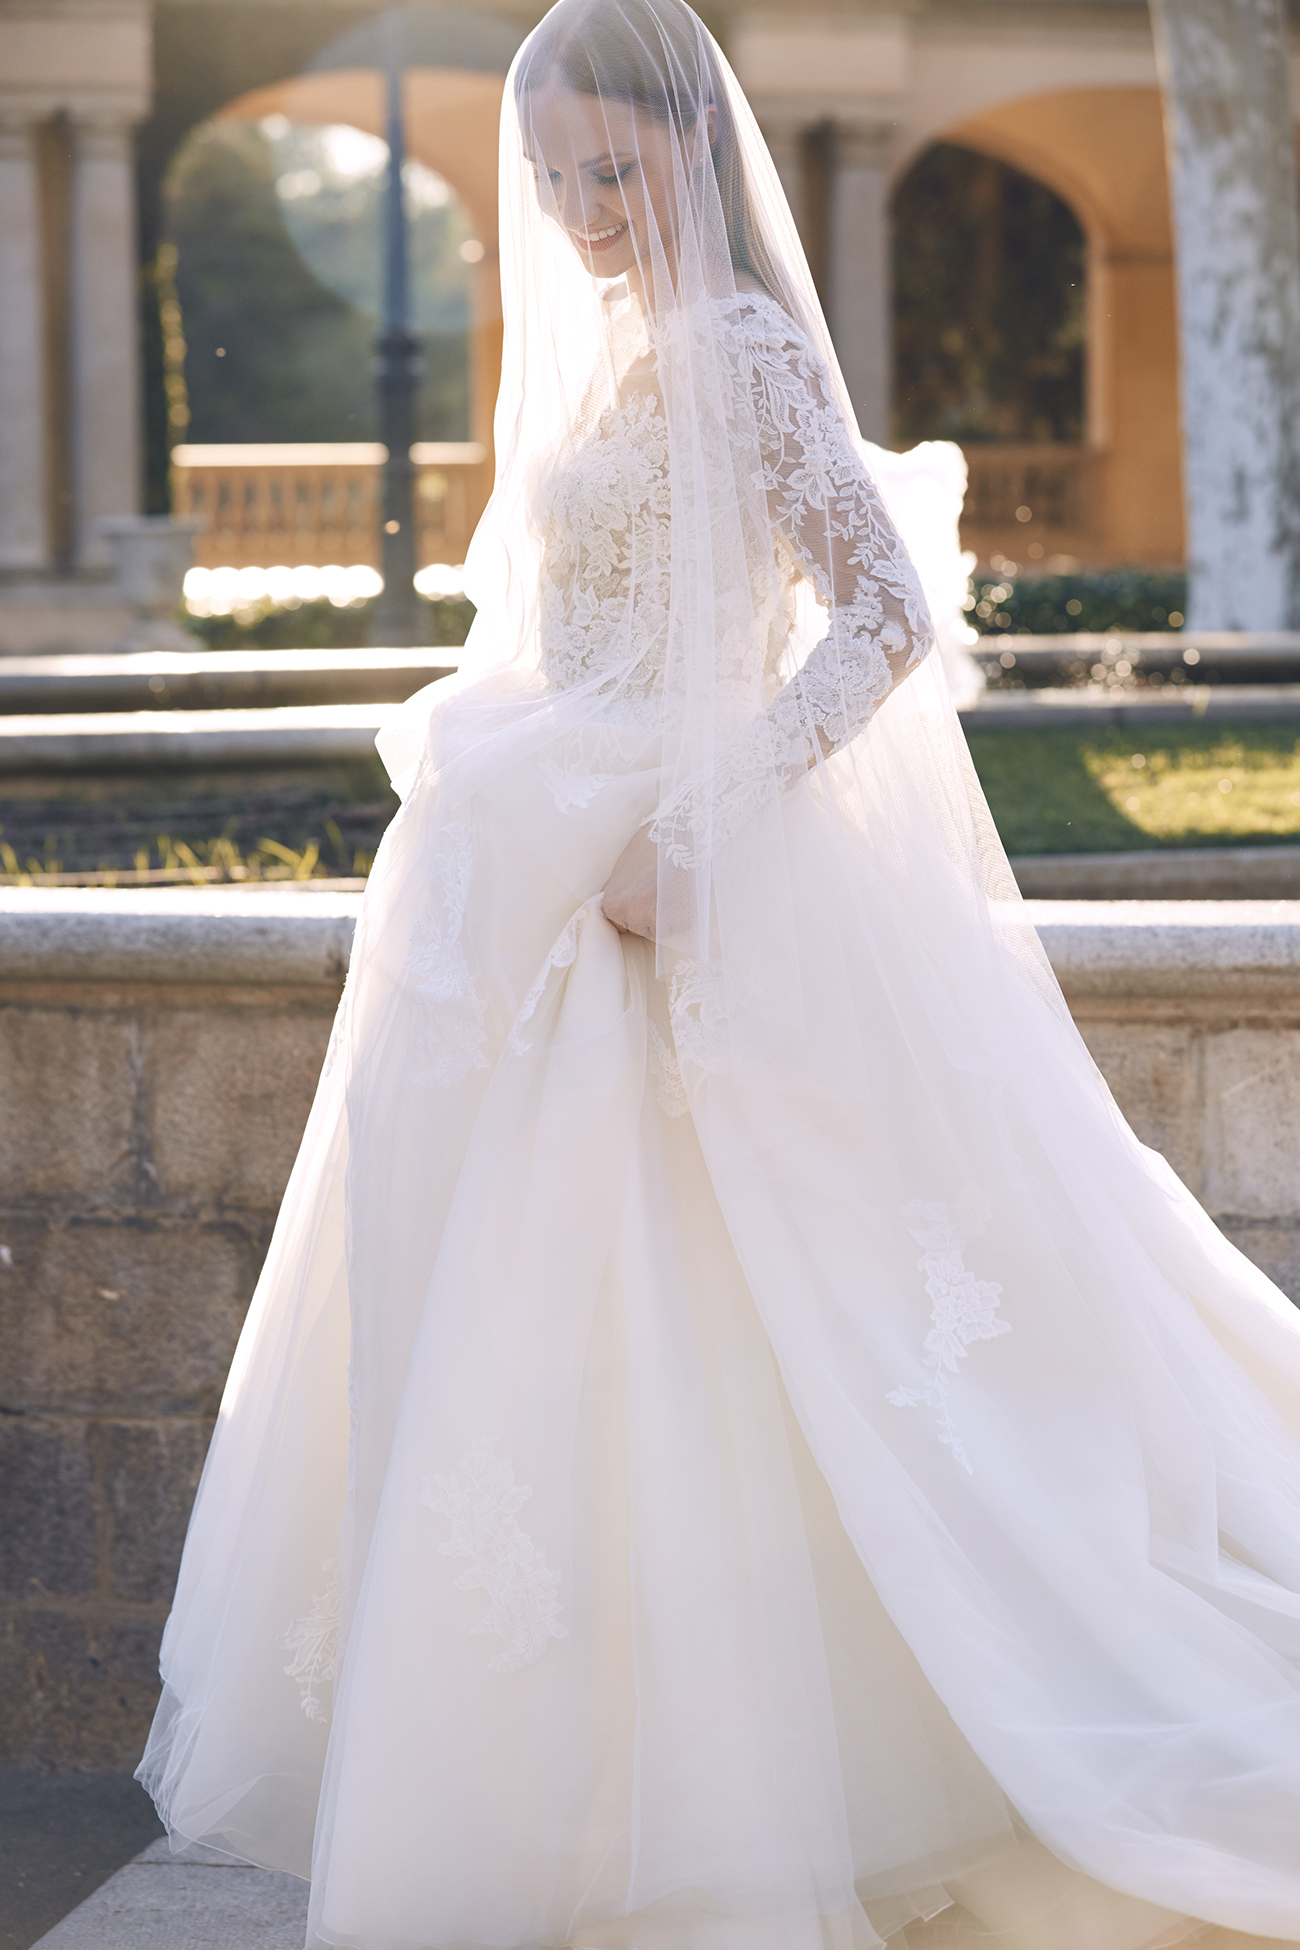 St Patrick Wedding Dresses Prices 98 Beautiful Last but certainly not